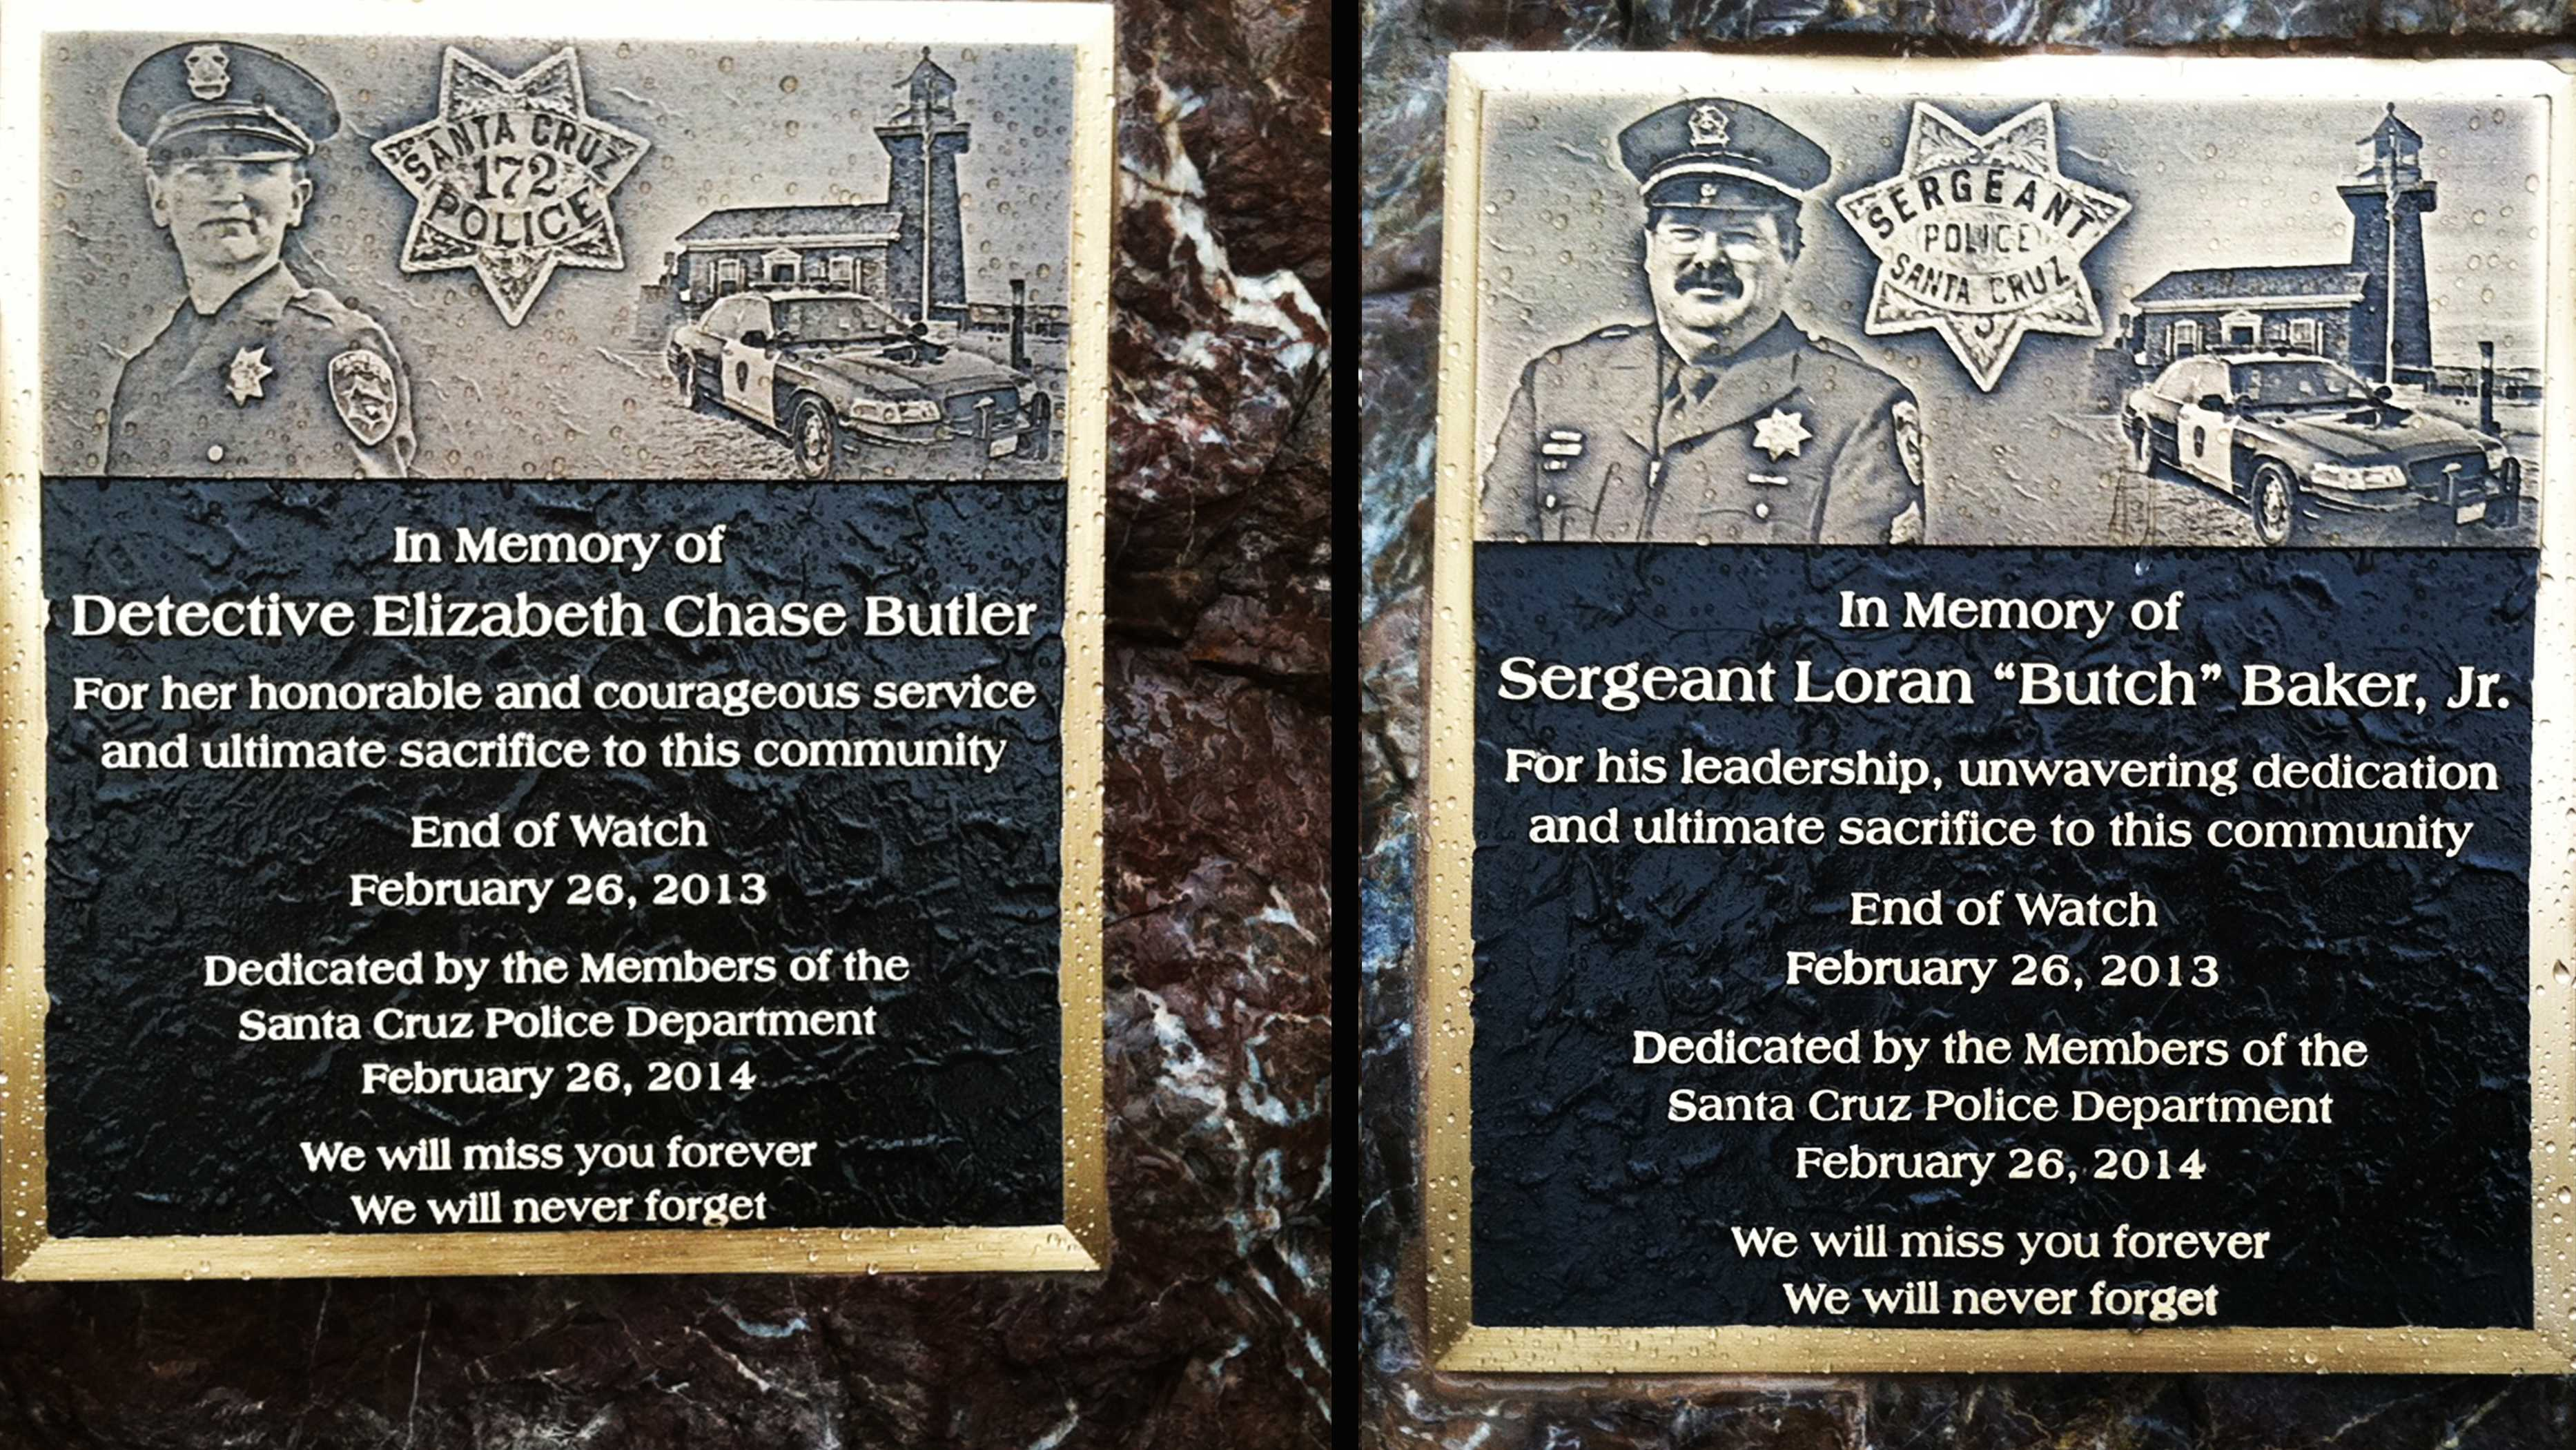 These memorial plaques were unveiled at the Santa Cruz Police Station Wednesday.